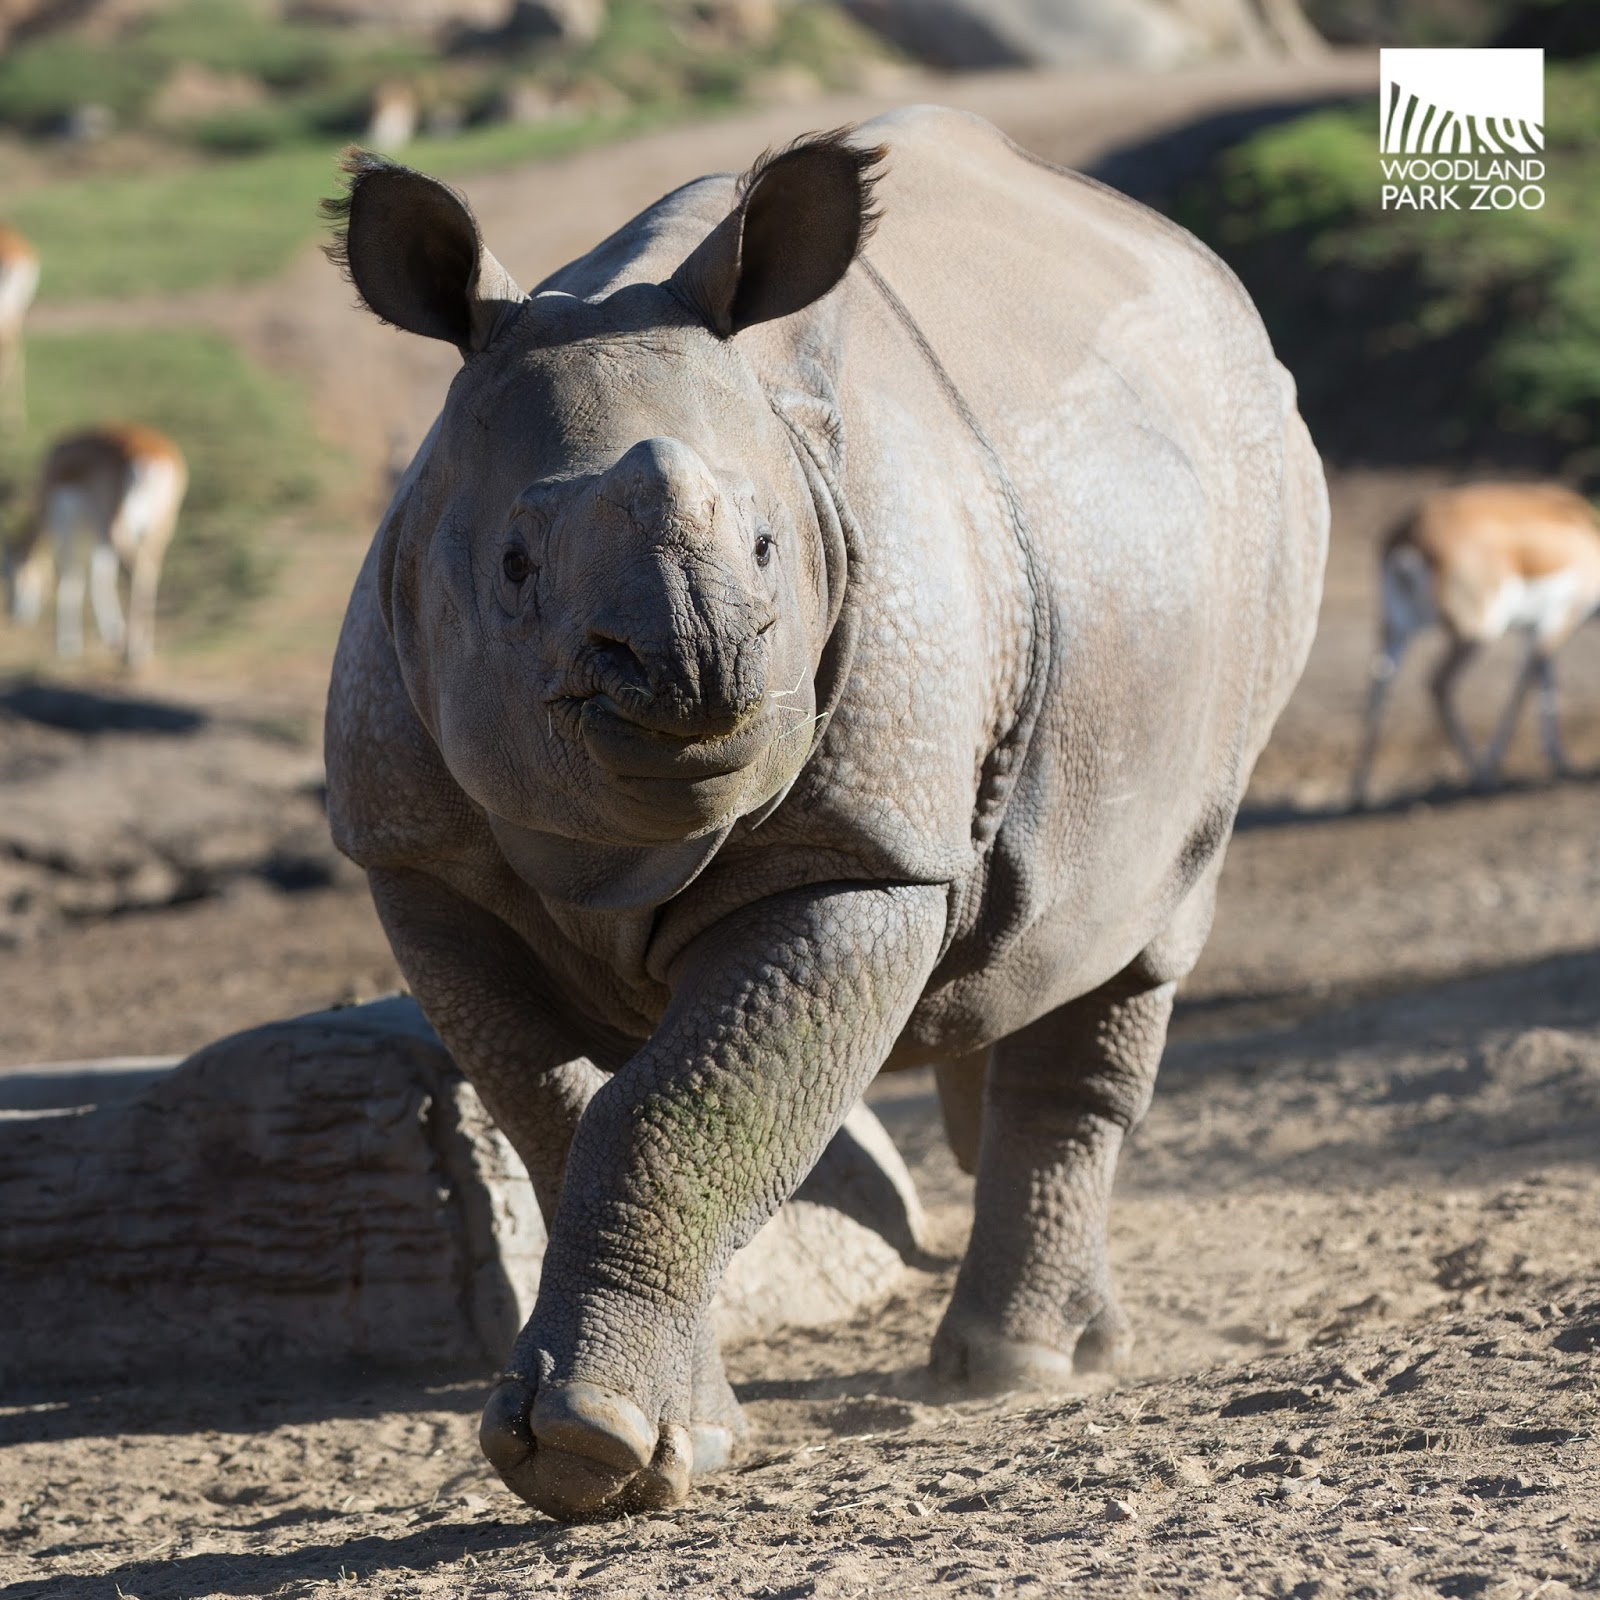 First rhino arrives safely at the zoo—welcome Taj! Assam